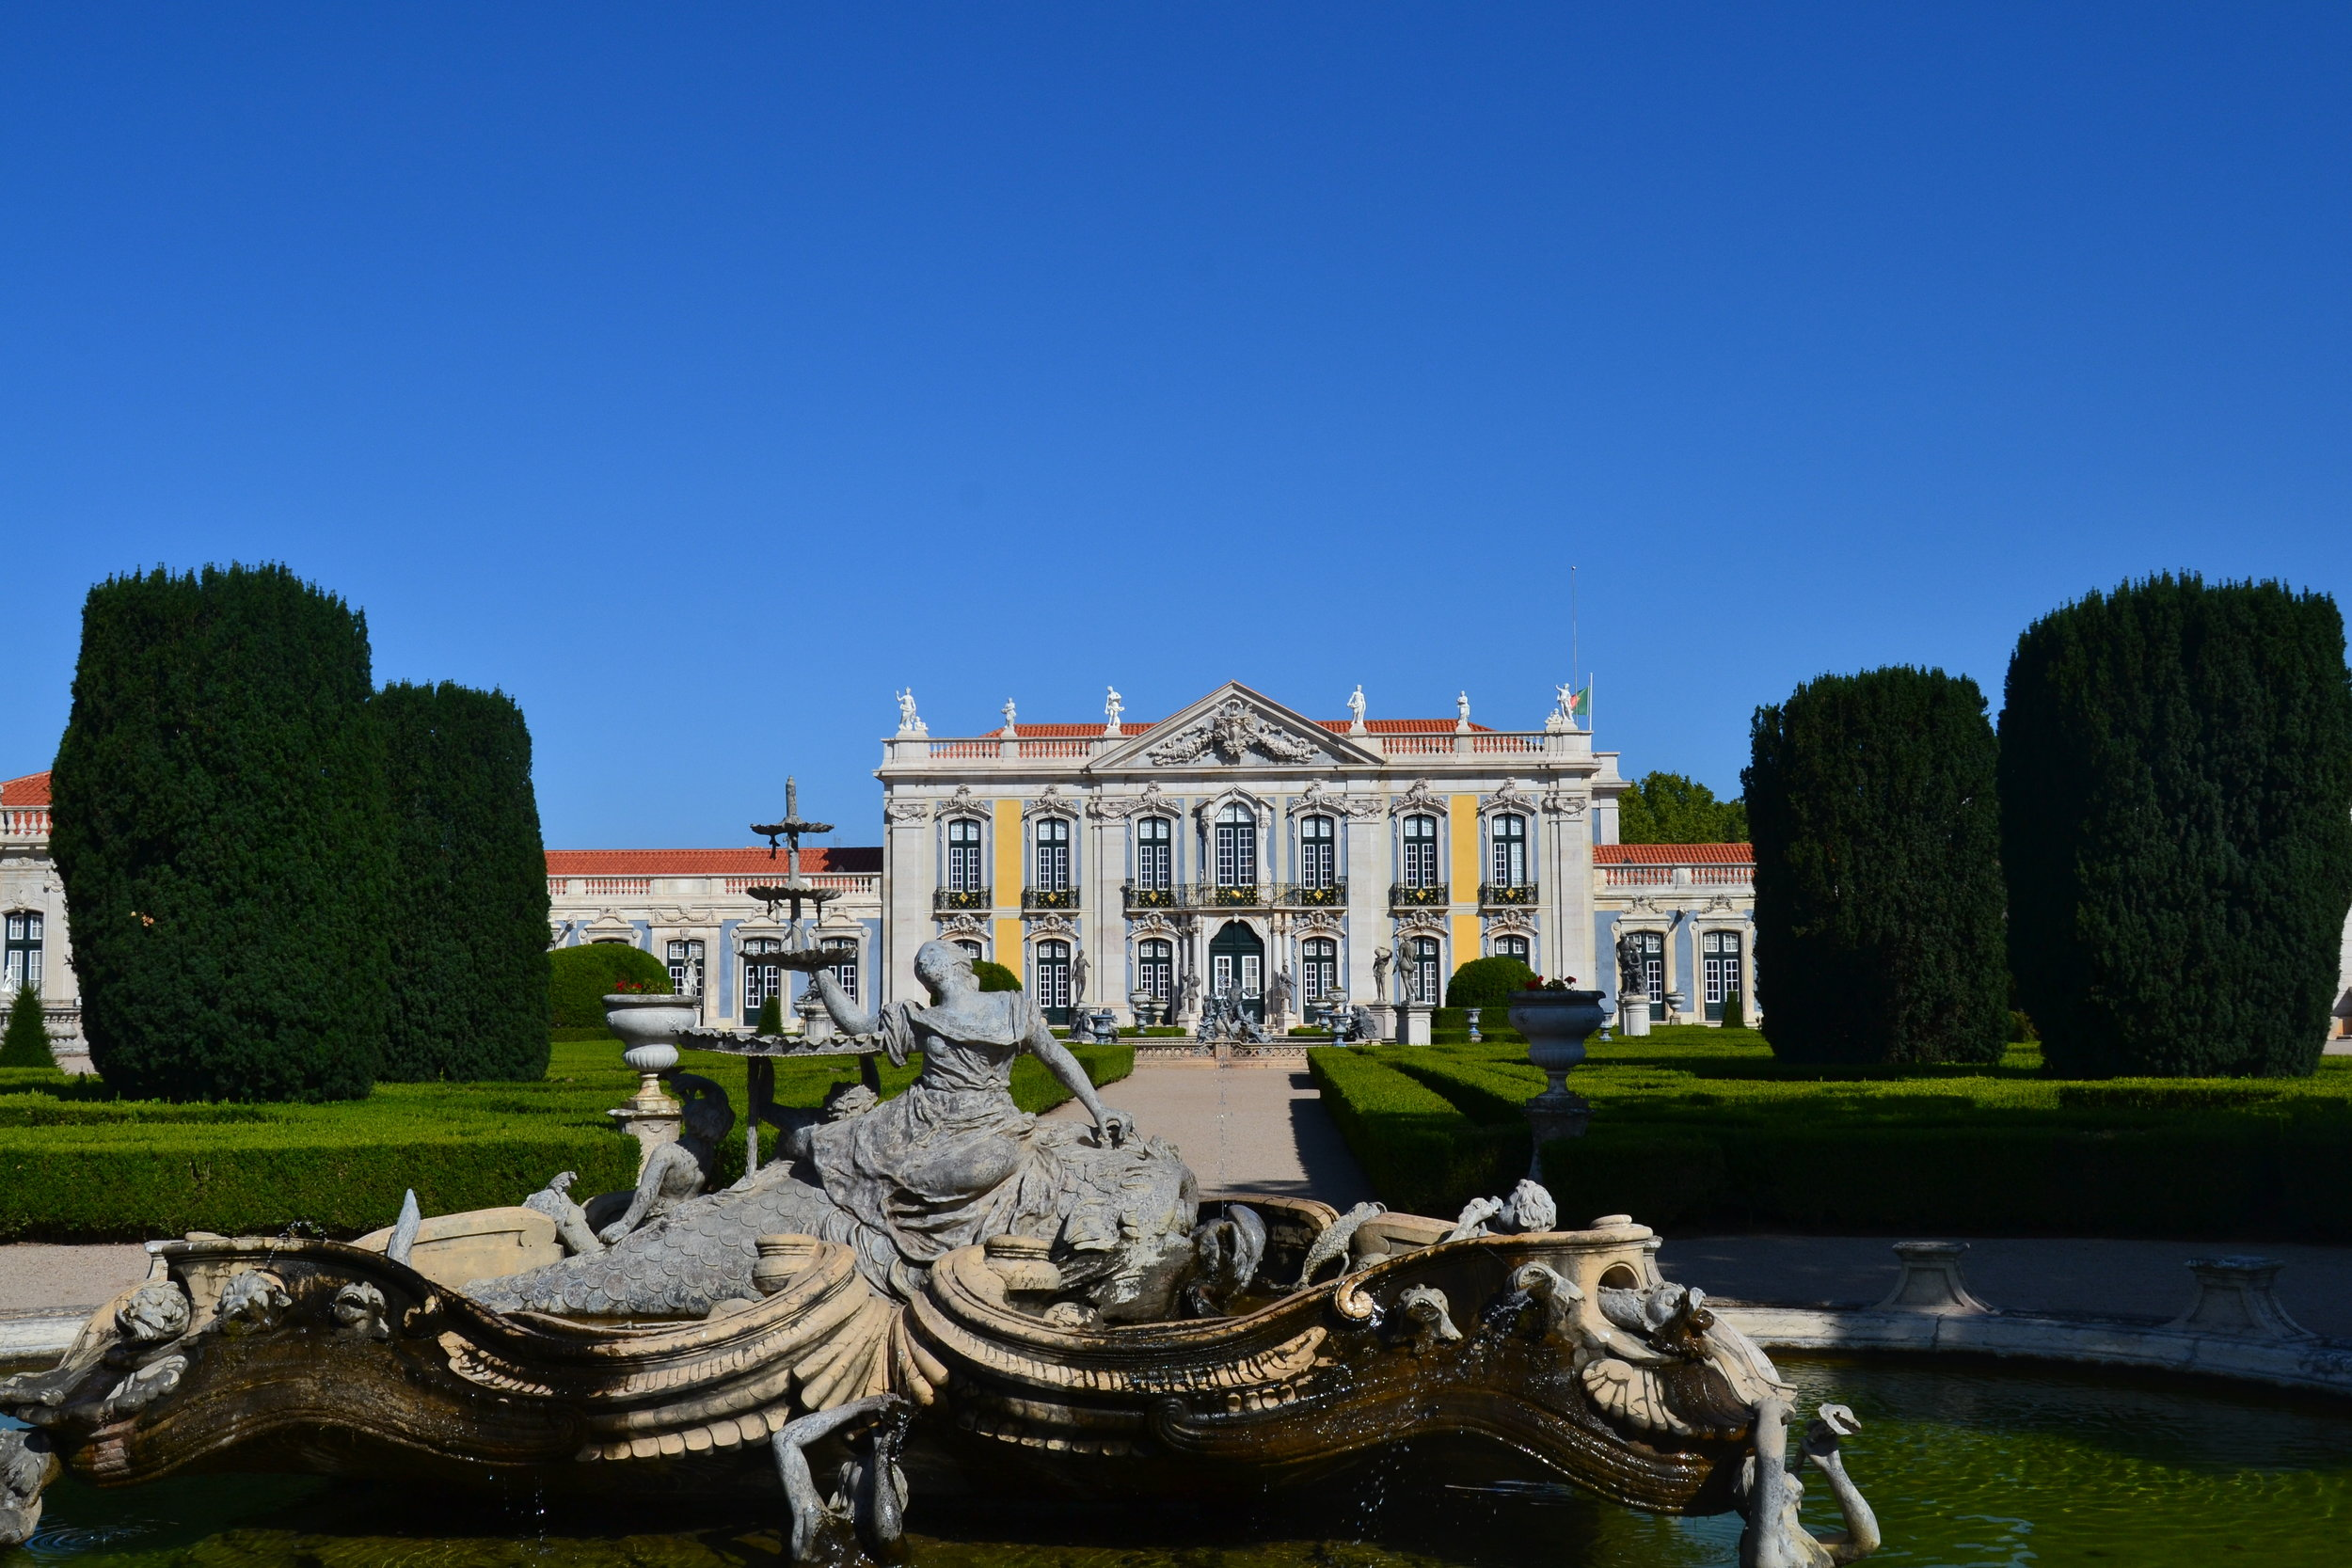 View of Queluz Palace in the morning from the gardens